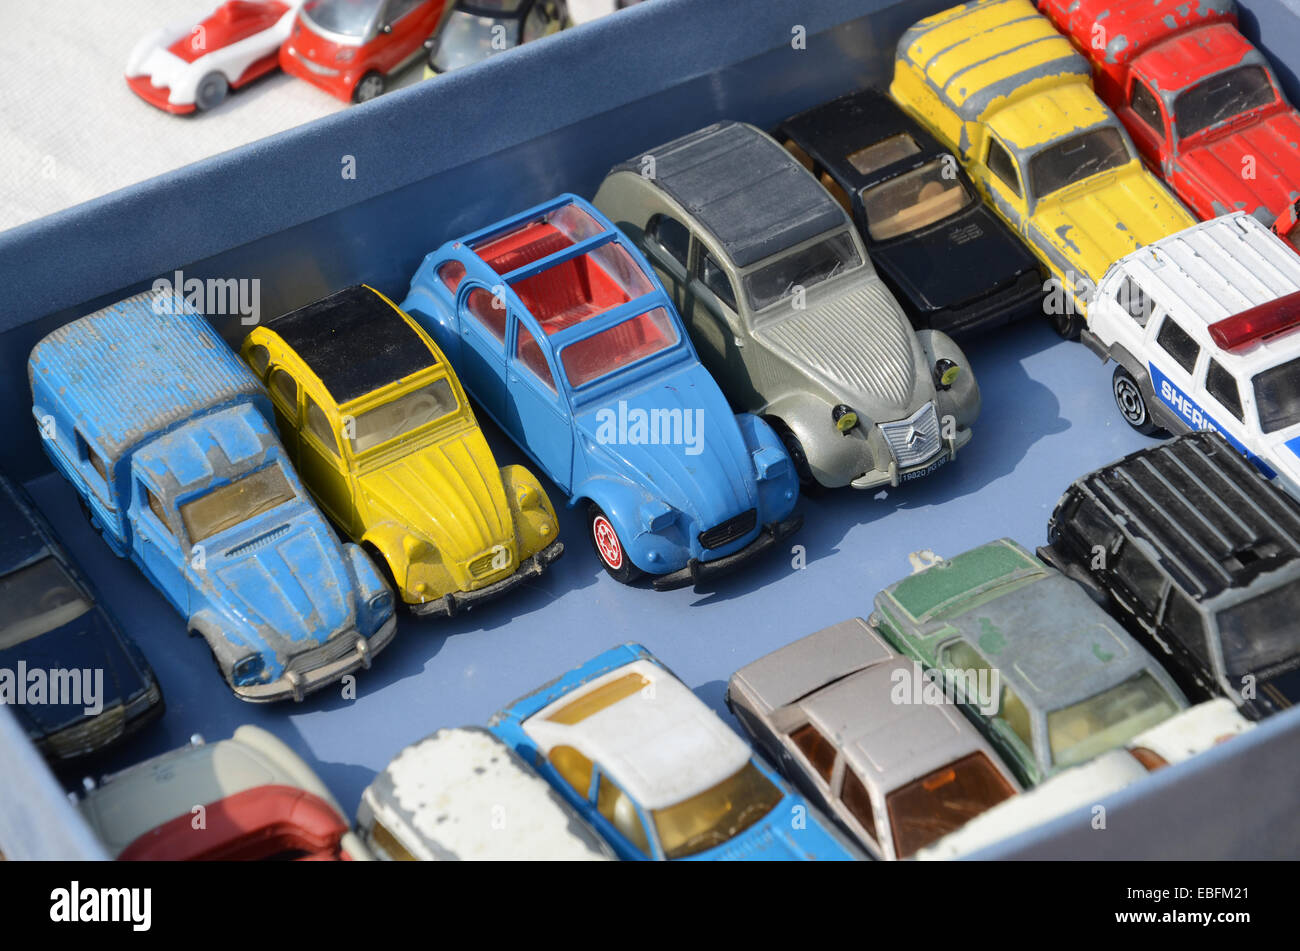 toy car collection display stock photos toy car collection display stock images alamy. Black Bedroom Furniture Sets. Home Design Ideas